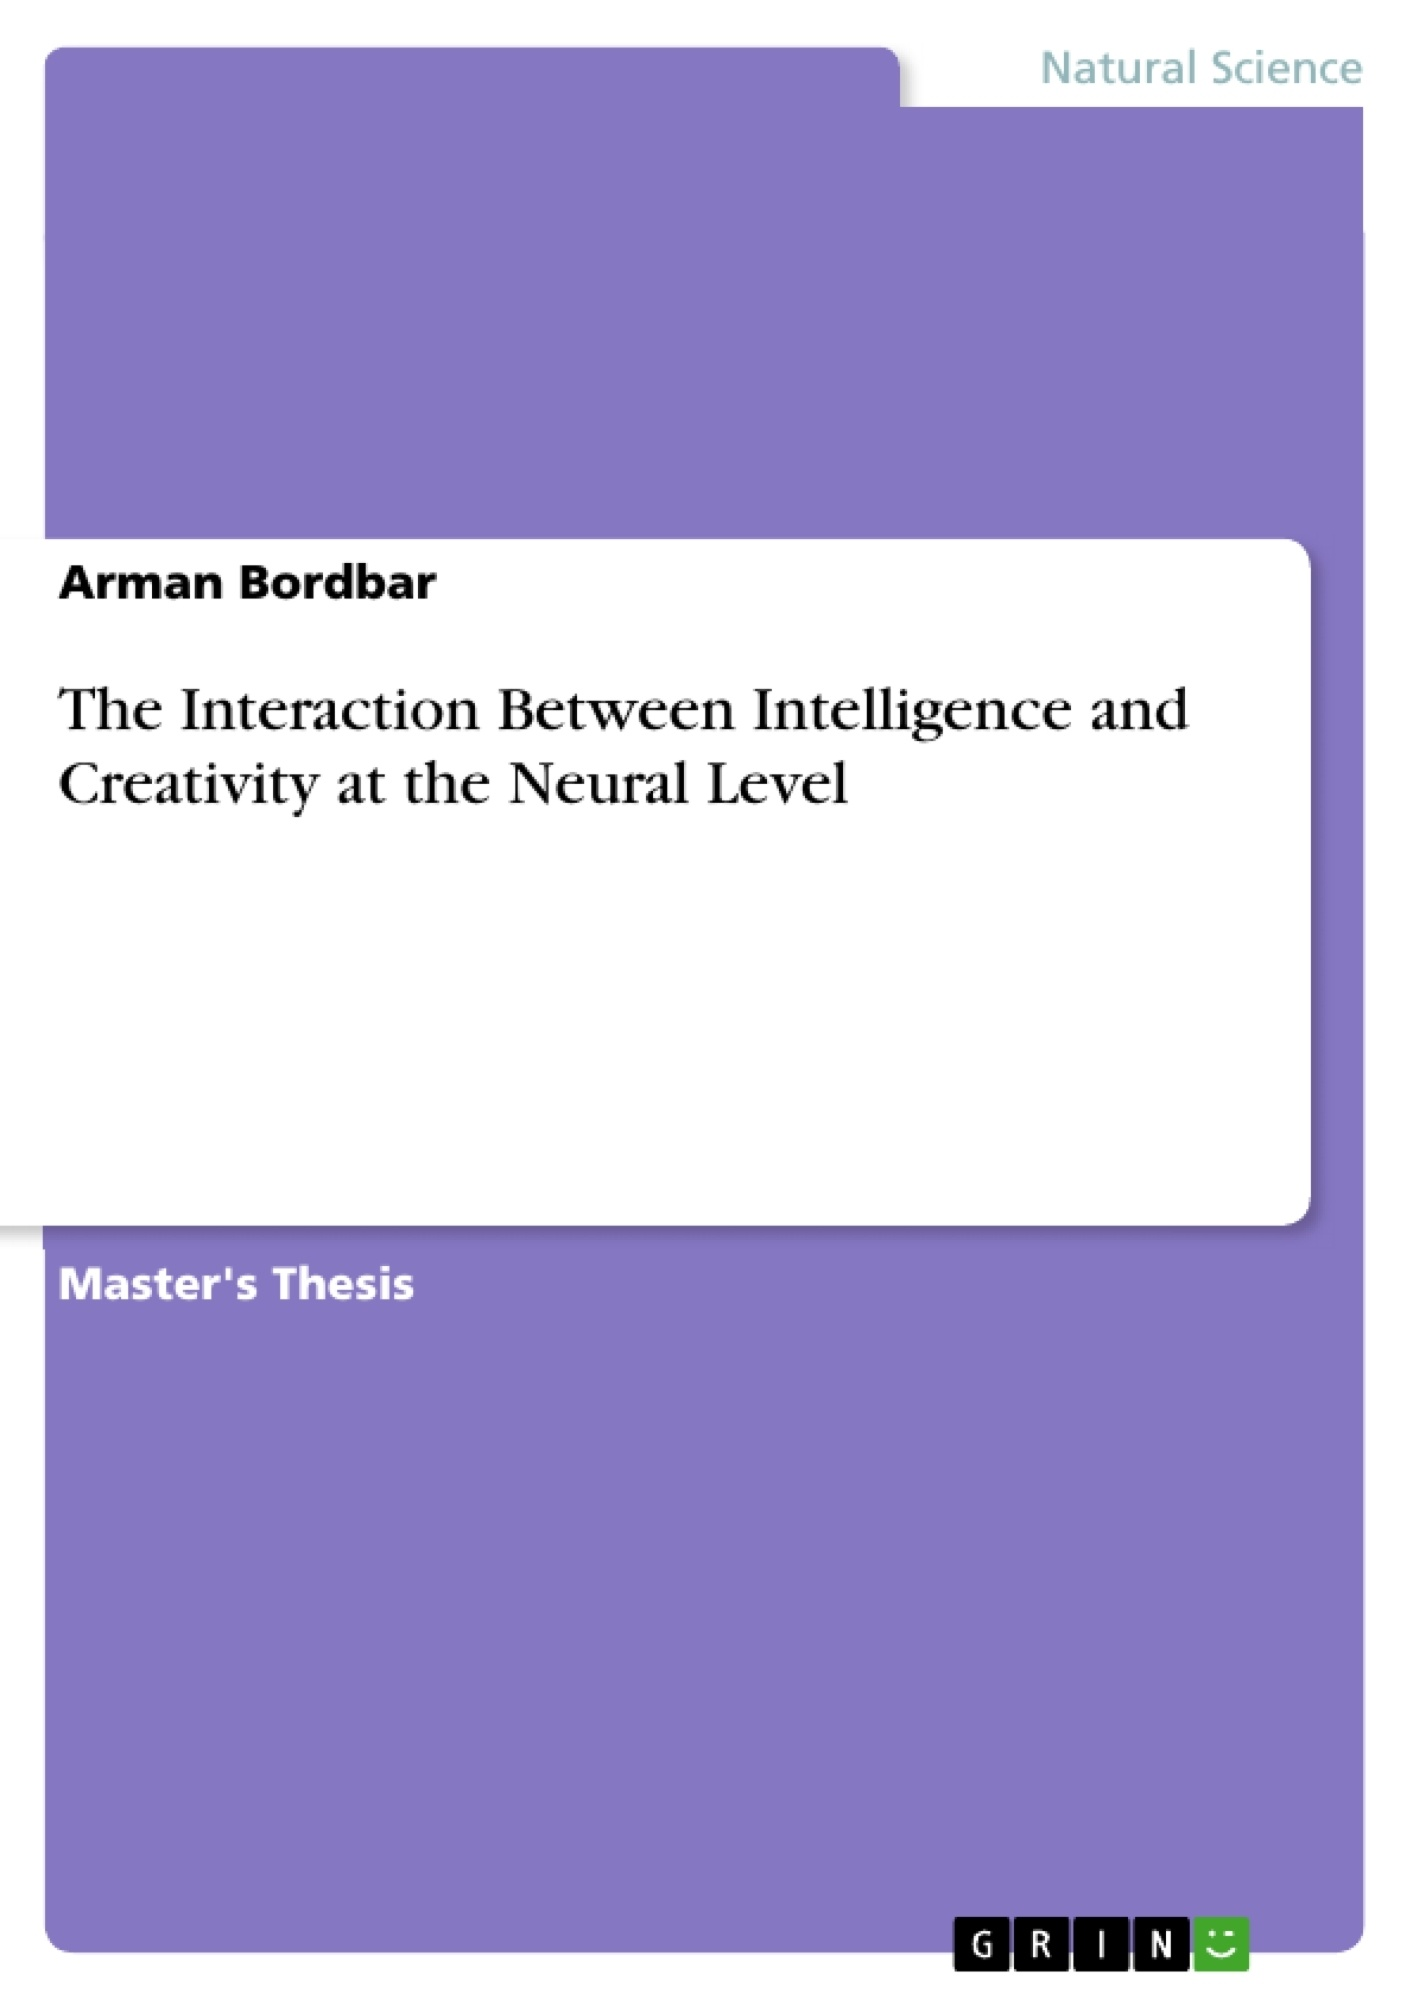 Title: The Interaction Between Intelligence and Creativity at the Neural Level